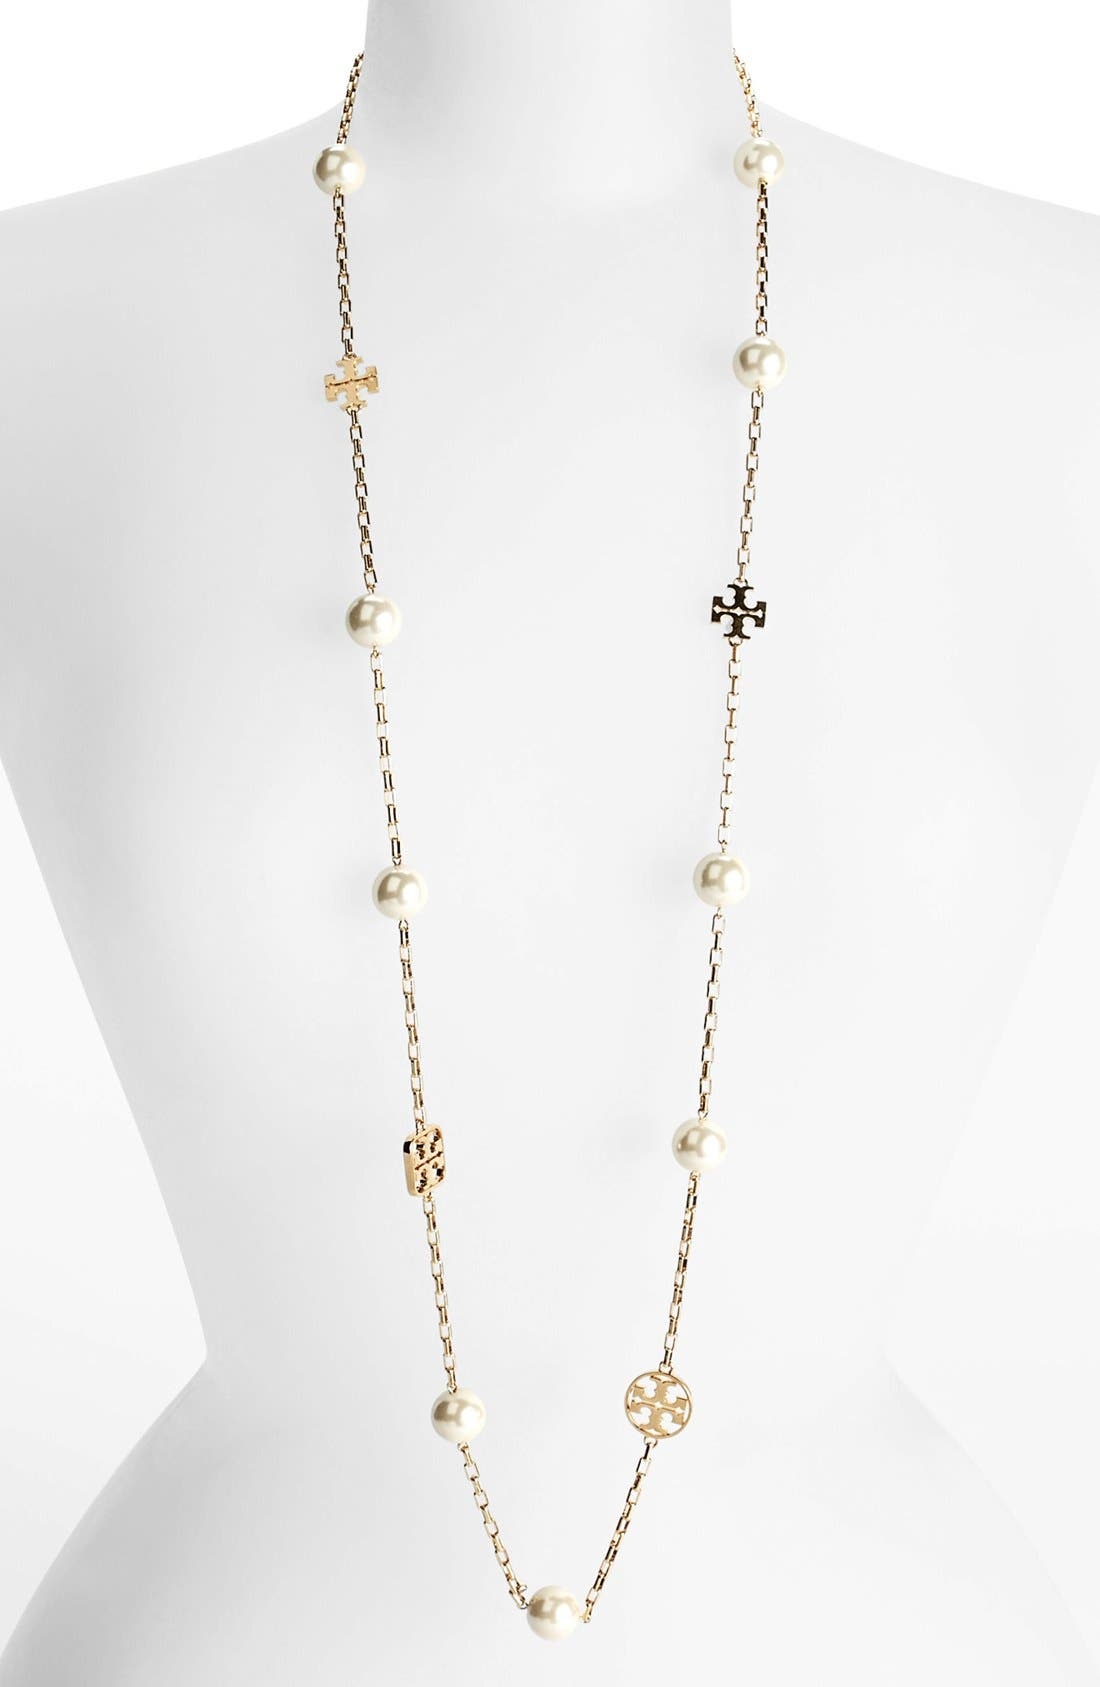 Main Image - Tory Burch 'Evie' Extra Long Station Necklace